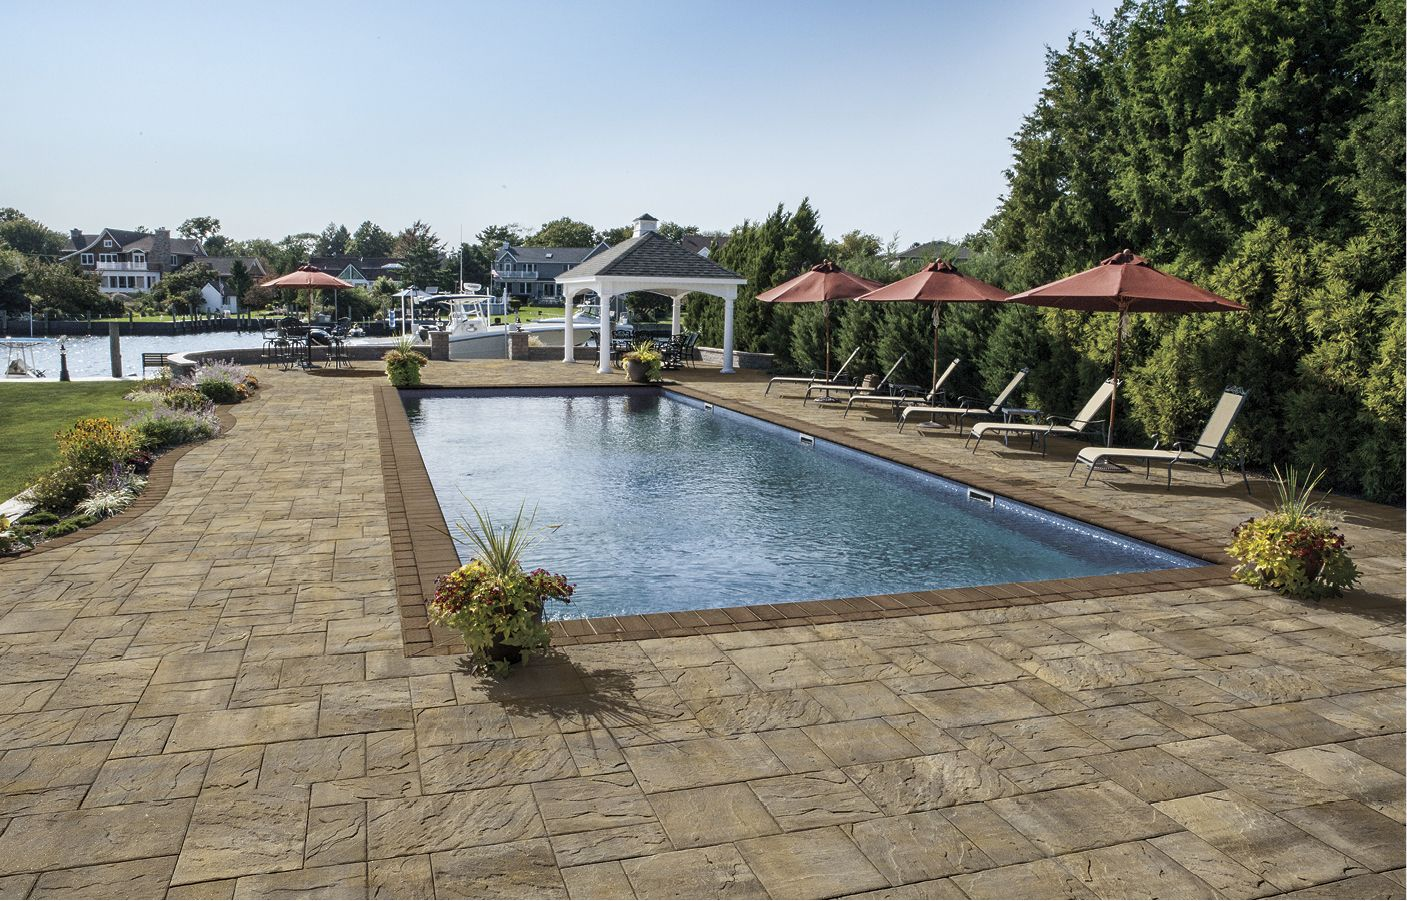 The pavingstones used to create this pool patio are The Sherwood Collection, Ledgestone Xl 3-Pc. Design Kit in Sahara/Chestnut.